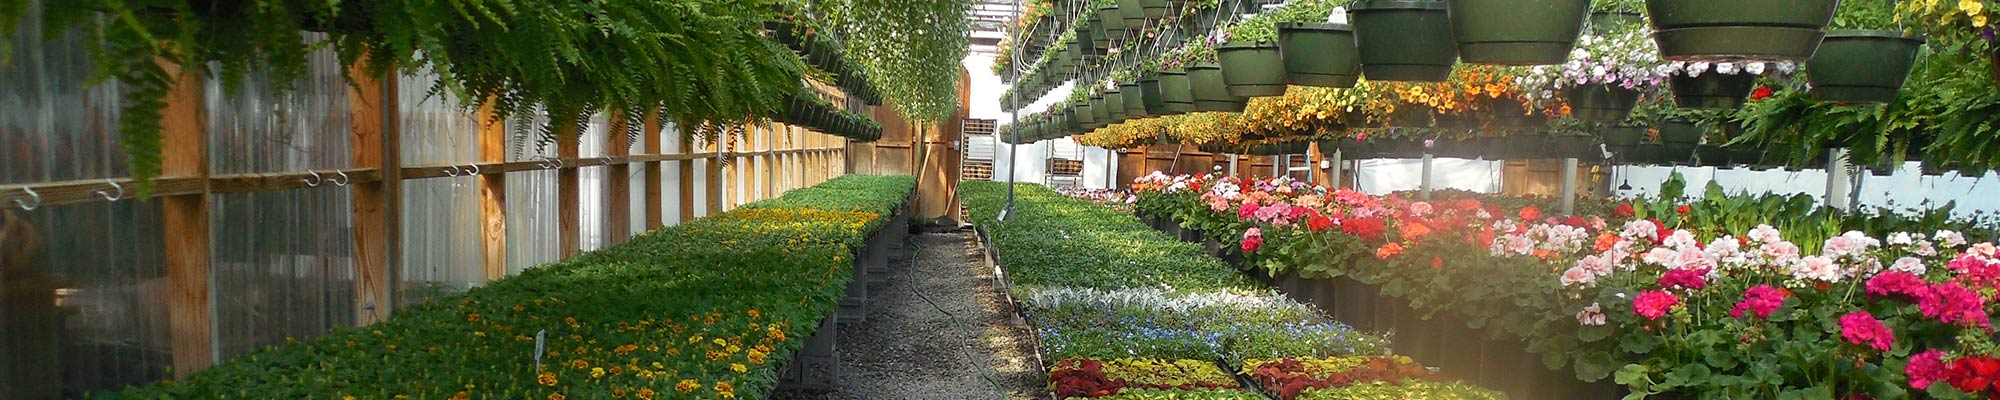 Greenhouses Accurate, versatile systems for controlled growing environments